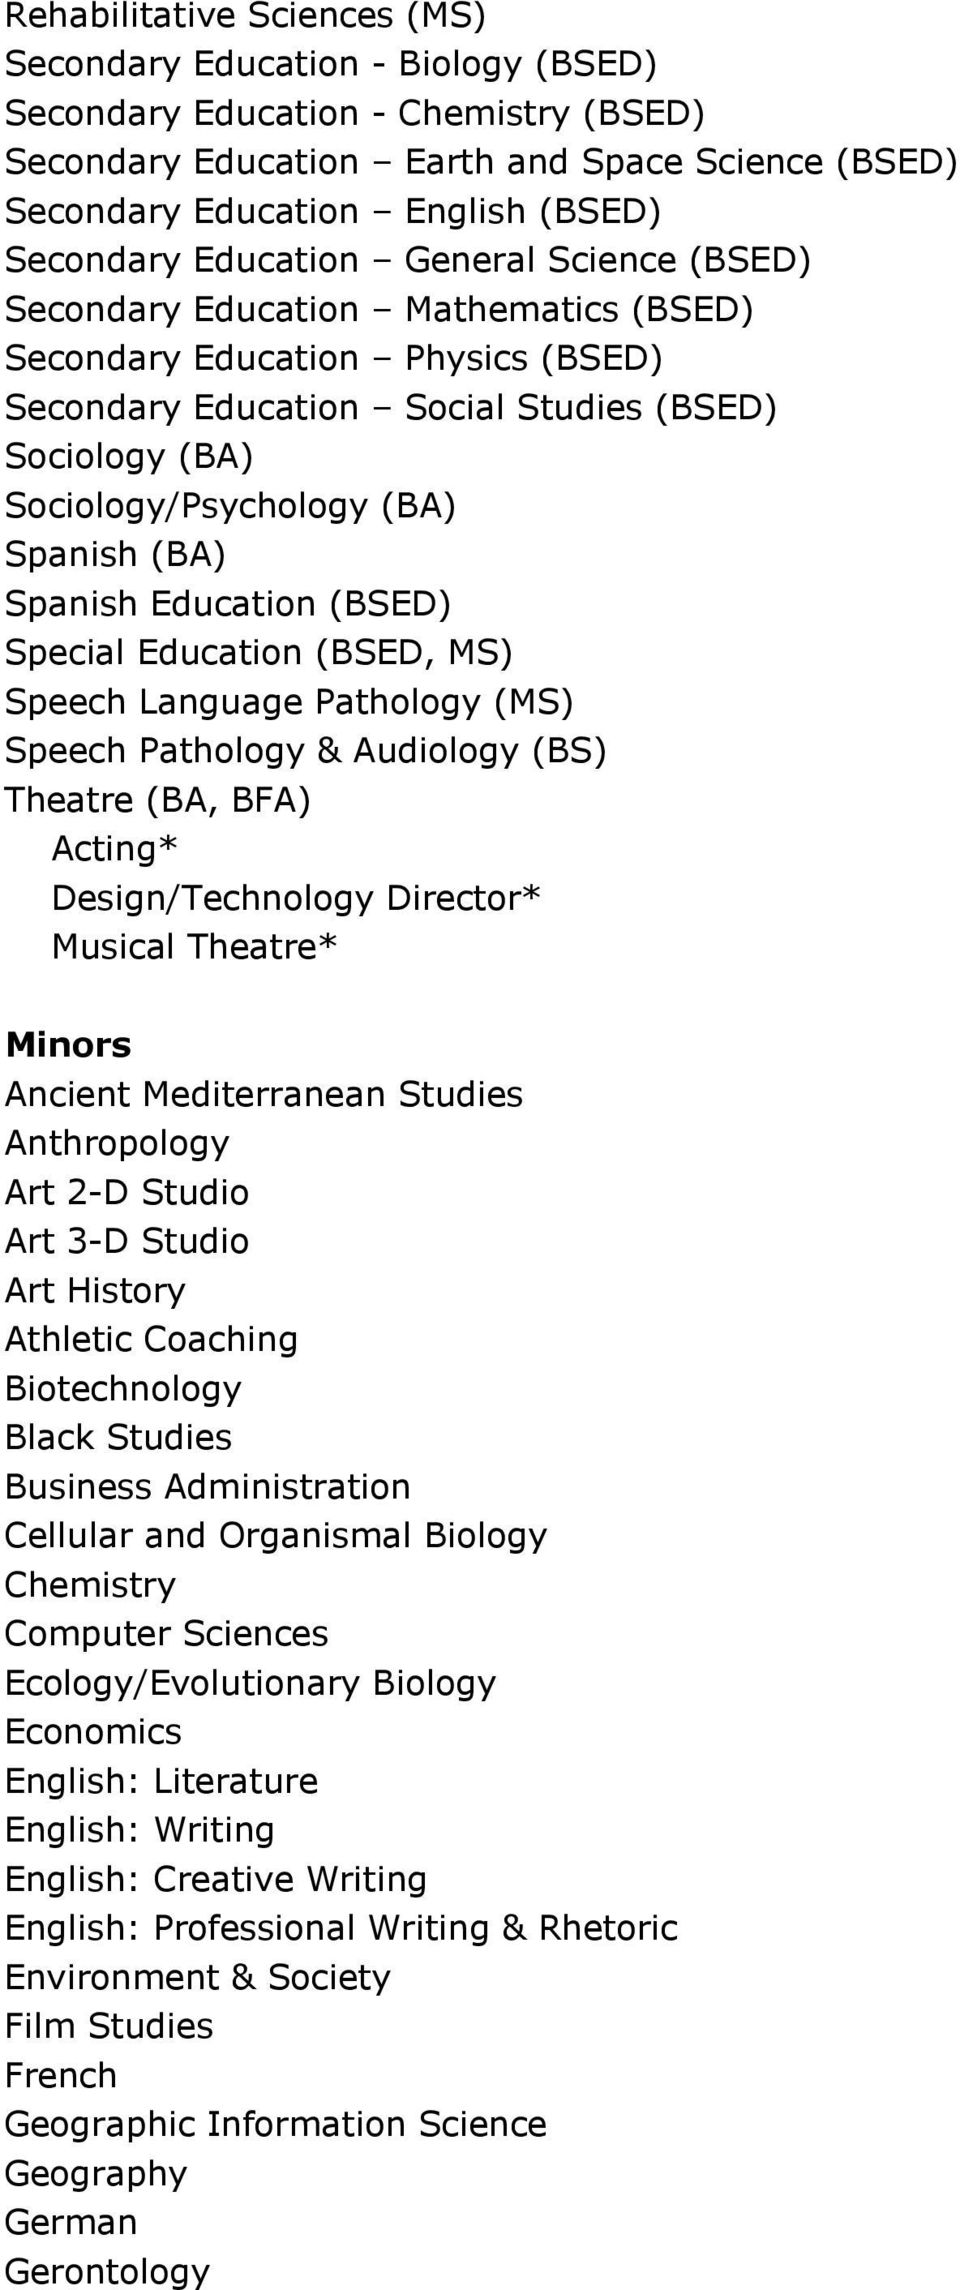 Spanish (BA) Spanish Education (BSED) Special Education (BSED, MS) Speech Language Pathology (MS) Speech Pathology & Audiology (BS) Theatre (BA, BFA) Acting* Design/Technology Director* Musical